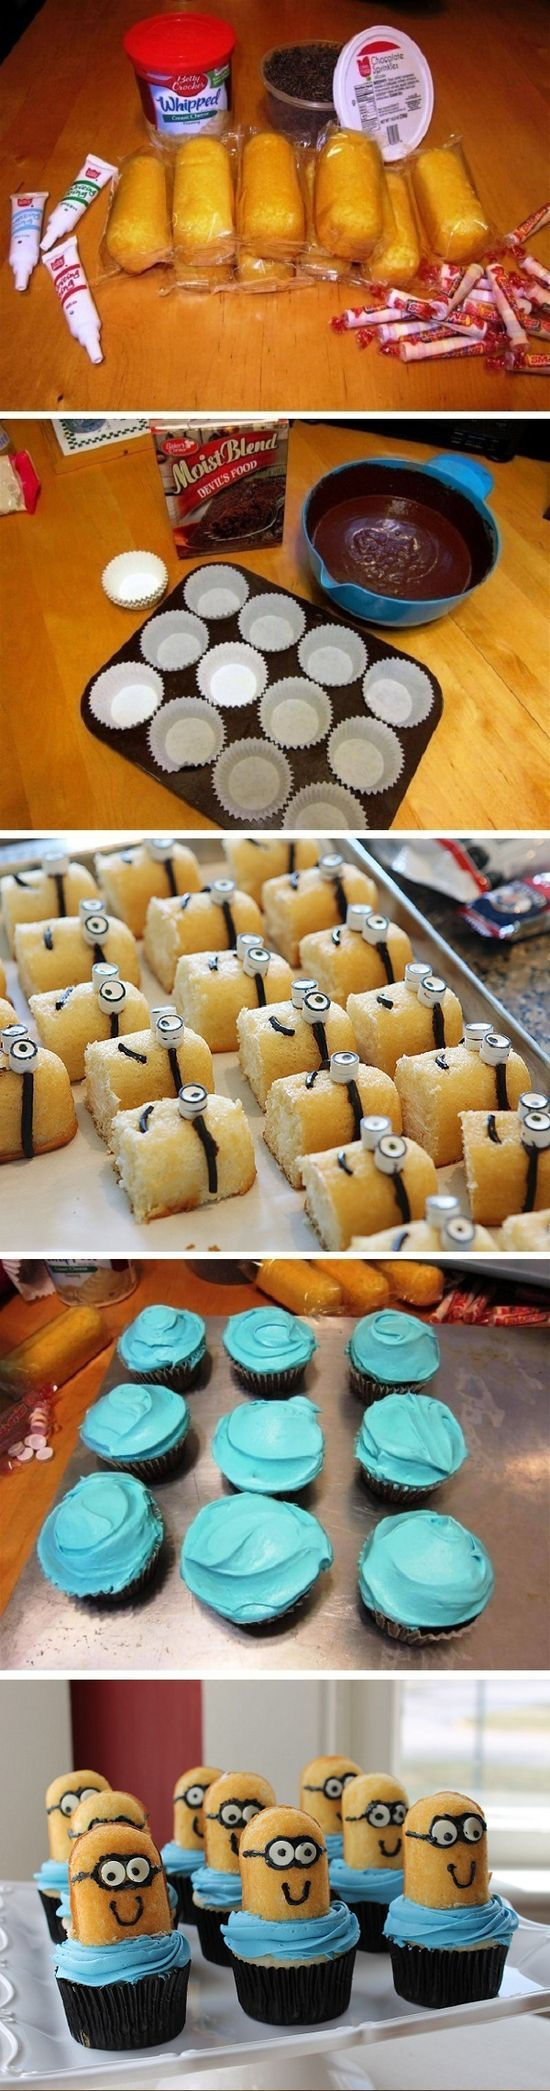 How to Make Despicable Me Minion Cupcakes Twinkie Edition - | http://amazingbirthdayideas.blogspot.com